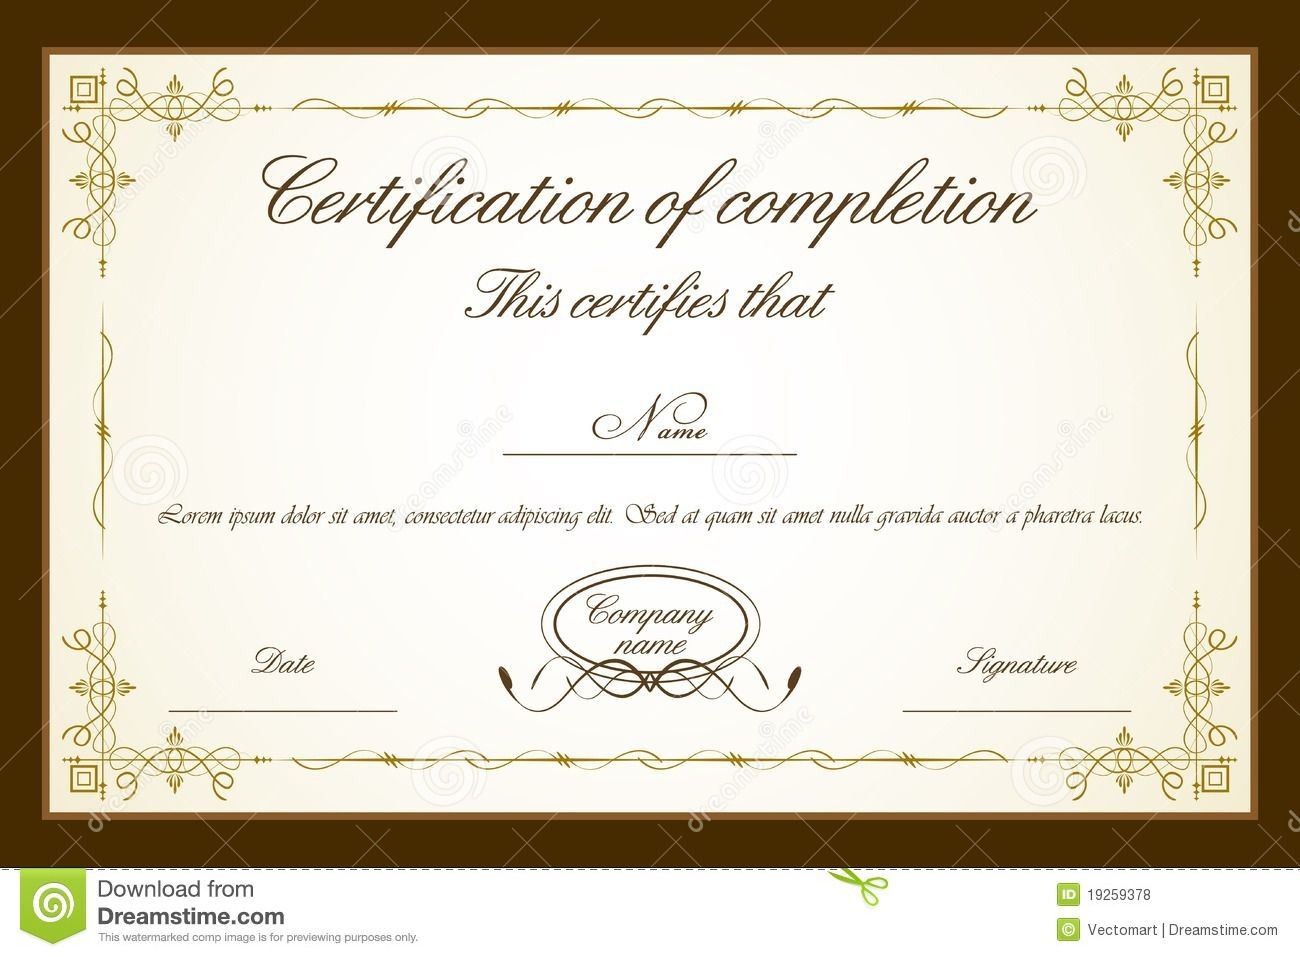 007 Impressive Free Printable Certificate Template High Resolution  Templates Blank Downloadable ParticipationFull